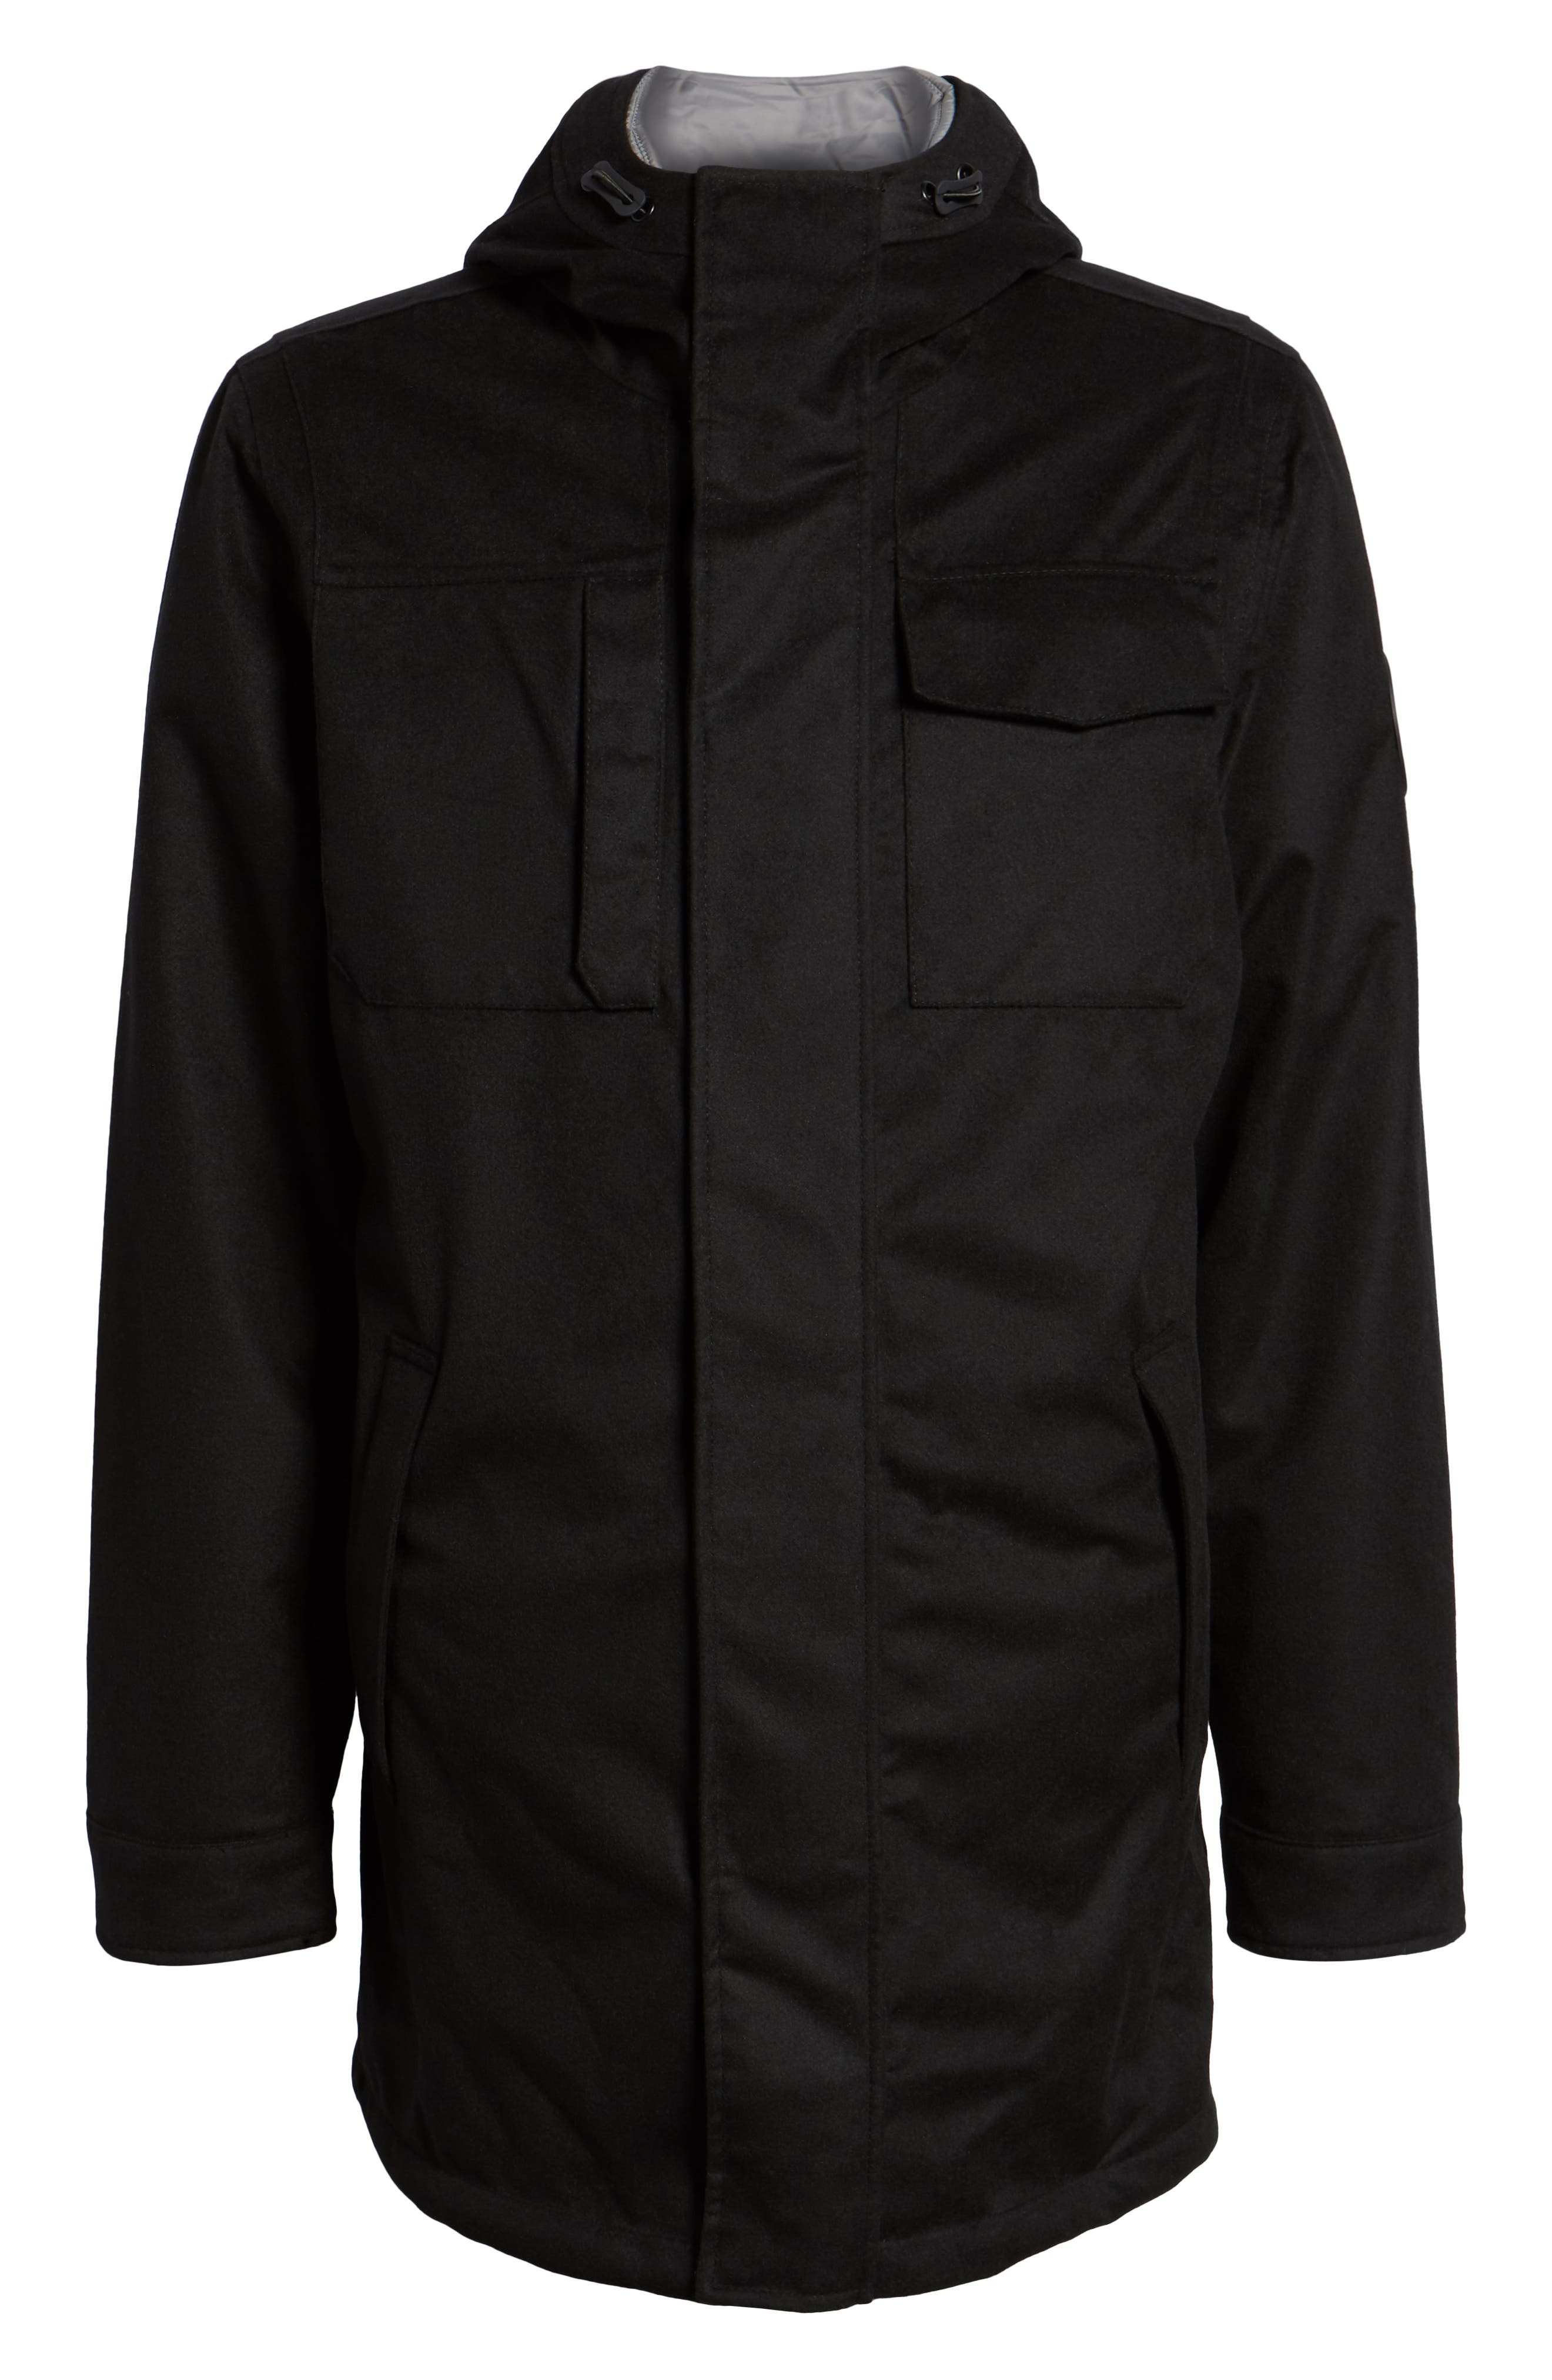 UGG<SUP>®</SUP>, Copeland 3-in-1 Parka, Alternate thumbnail 6, color, BLACK